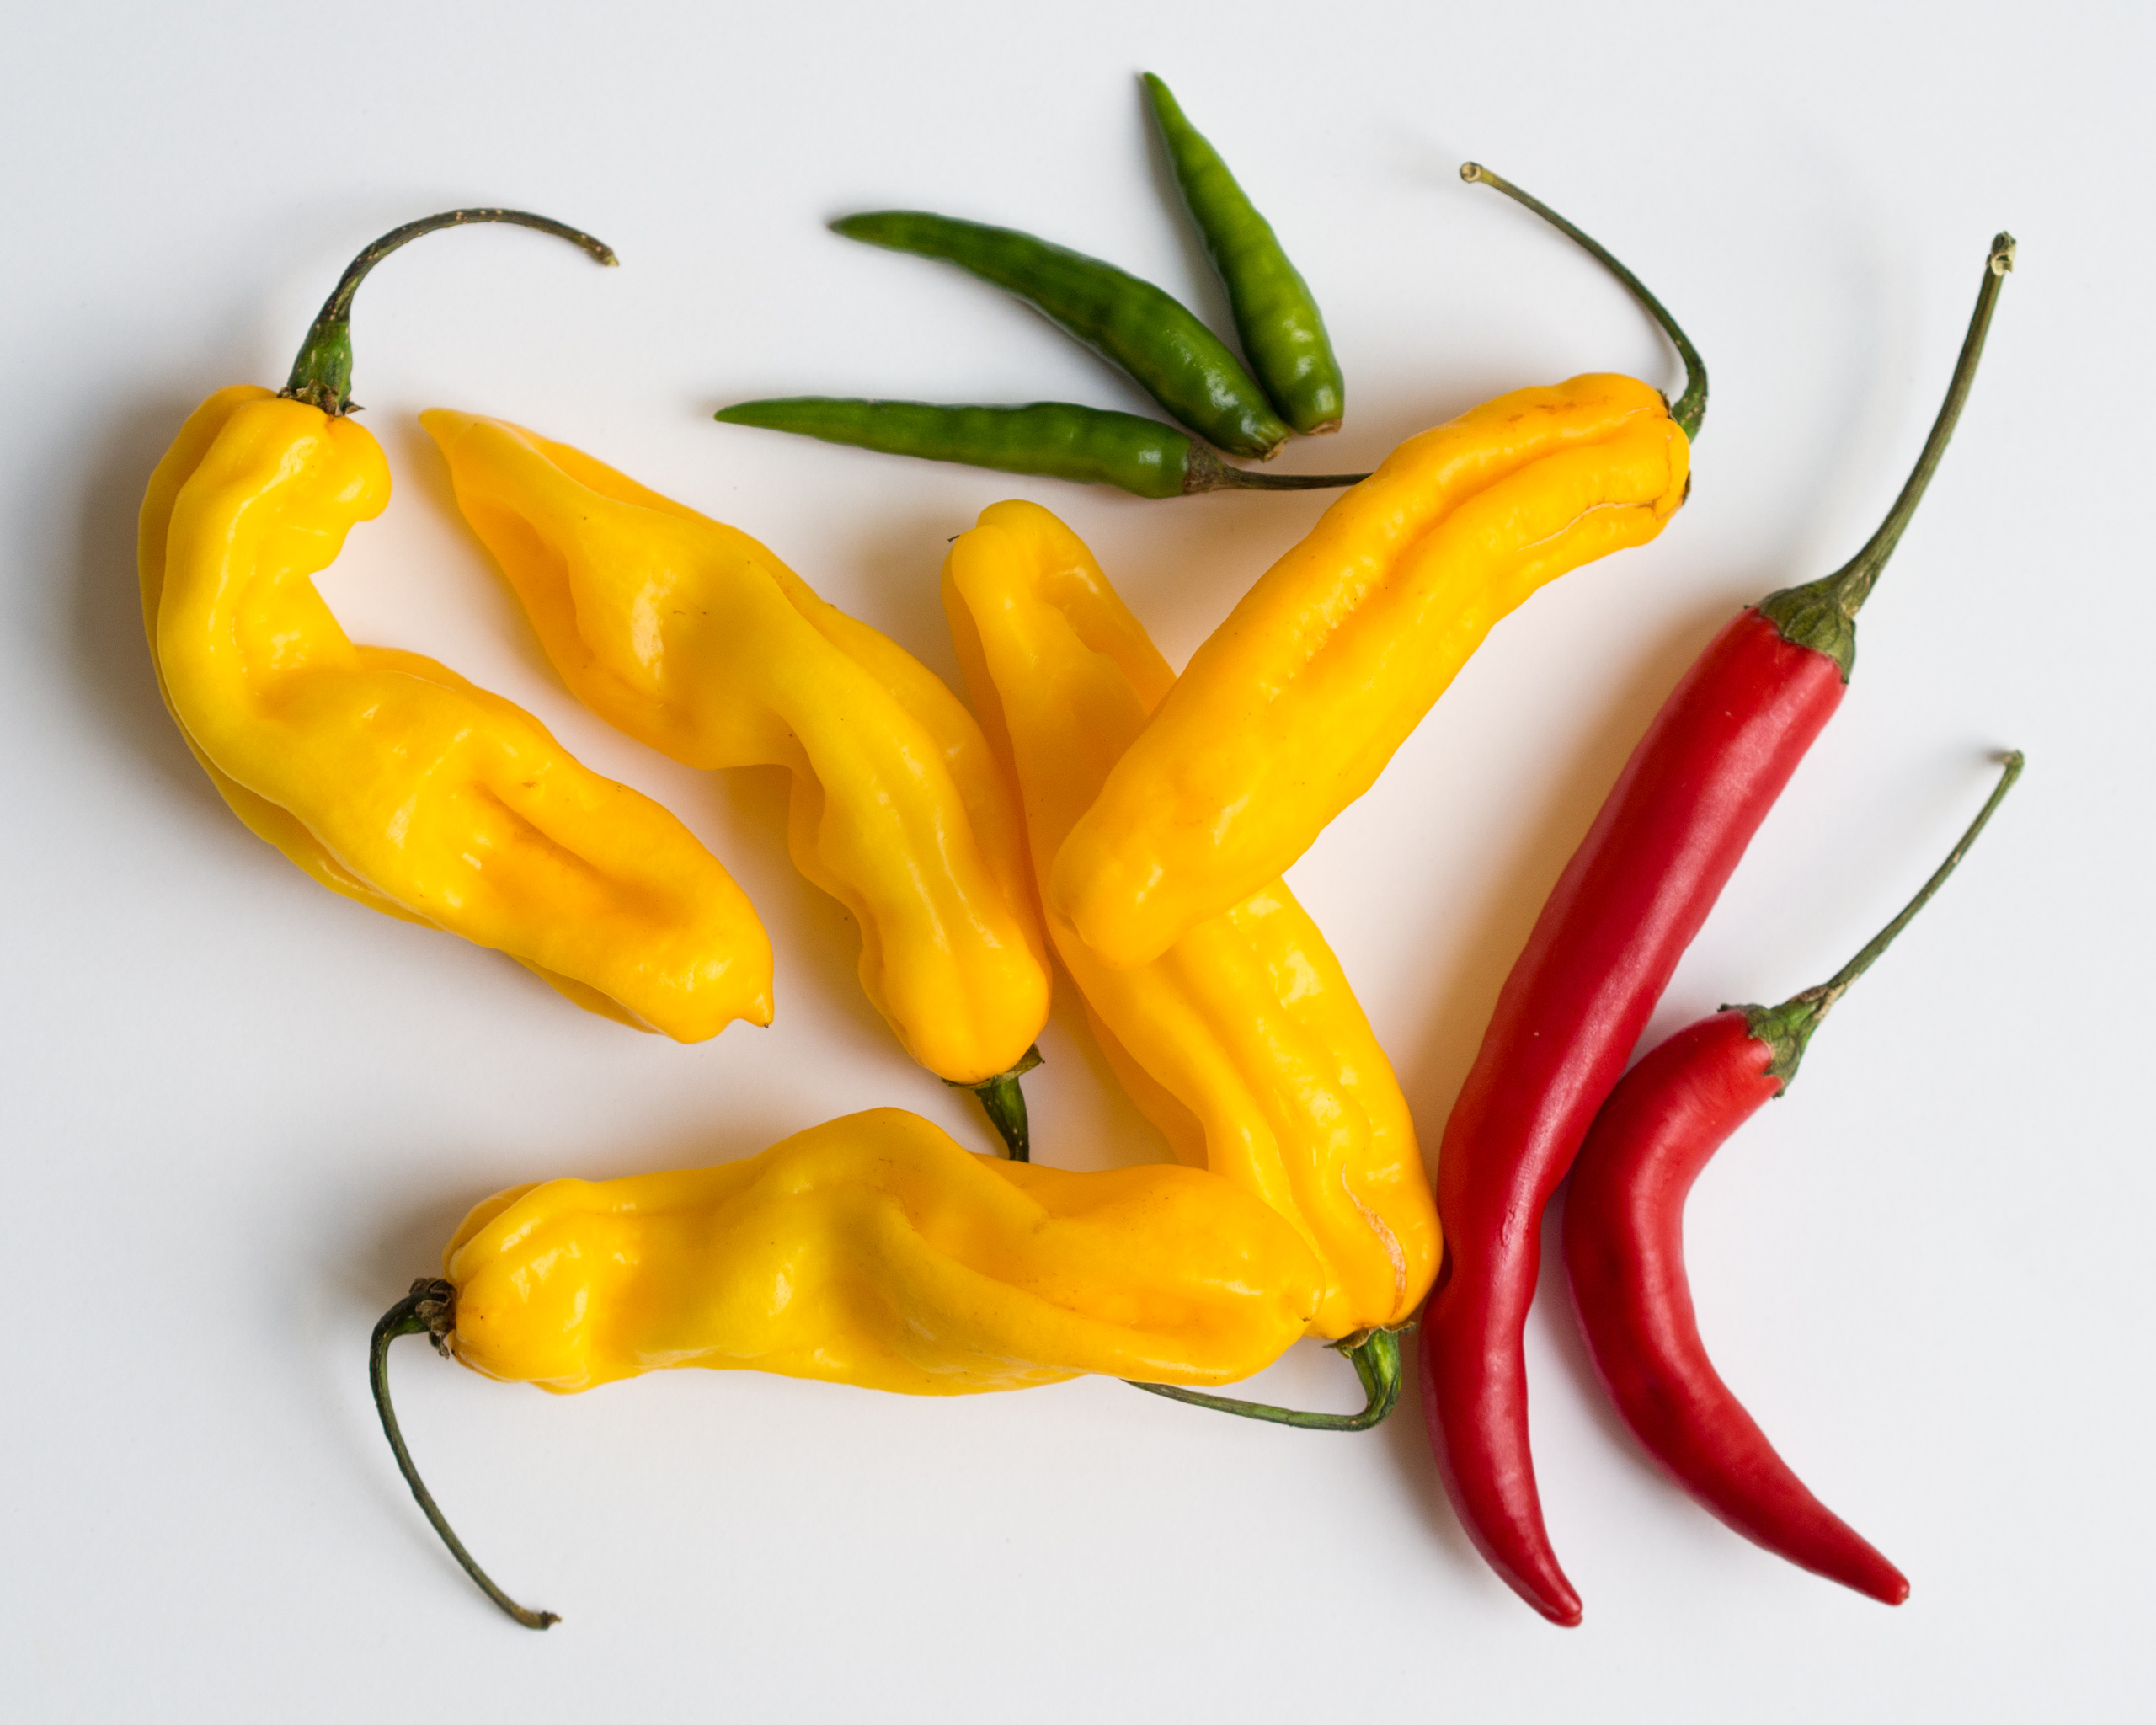 Sweet Banana and Cayenne Peppers